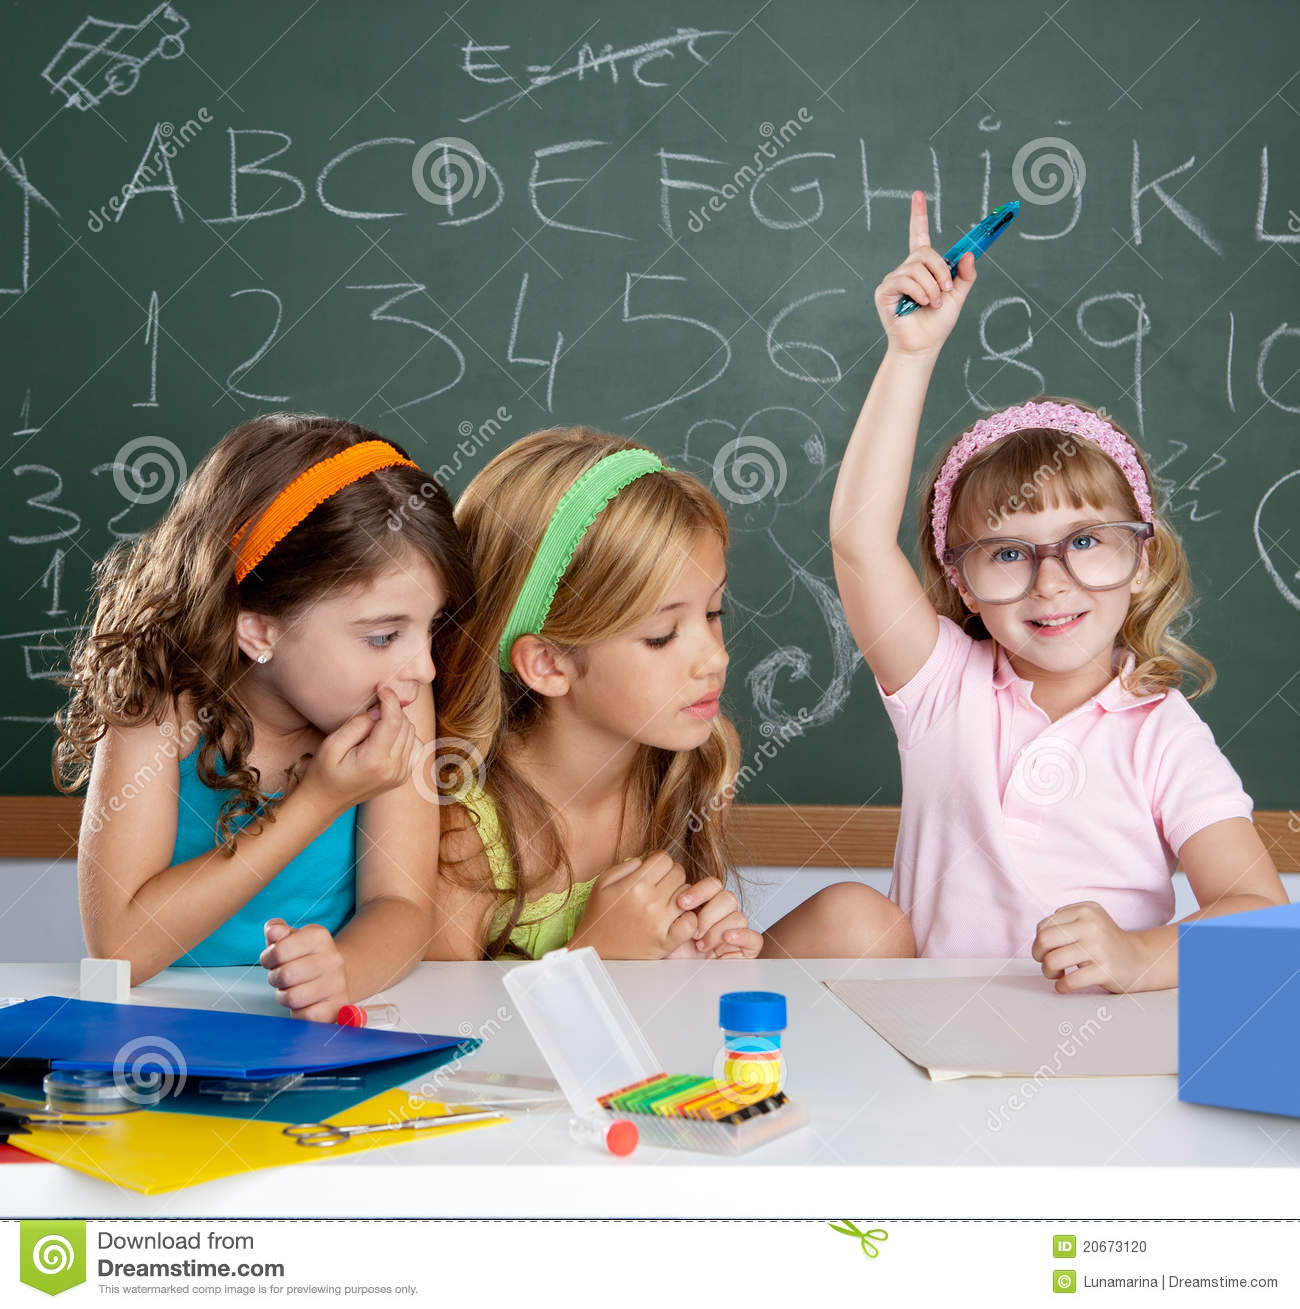 Clever School Girl: Students With Clever Children Girl Raising Hand Stock